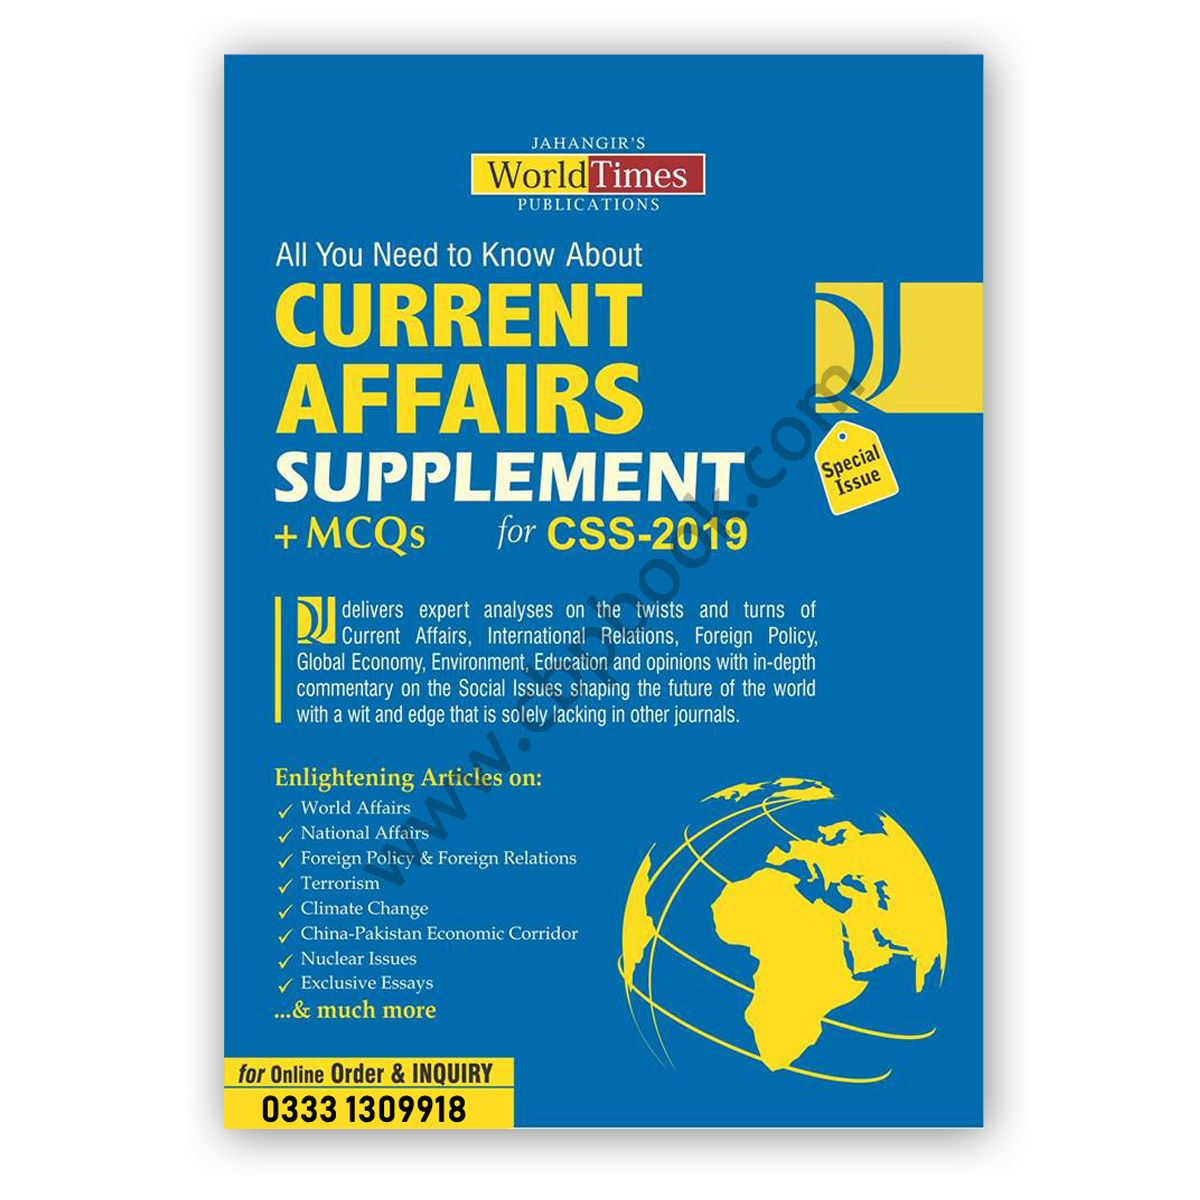 Current Affairs Supplements + MCQs for CSS 2019 - Jahangir World